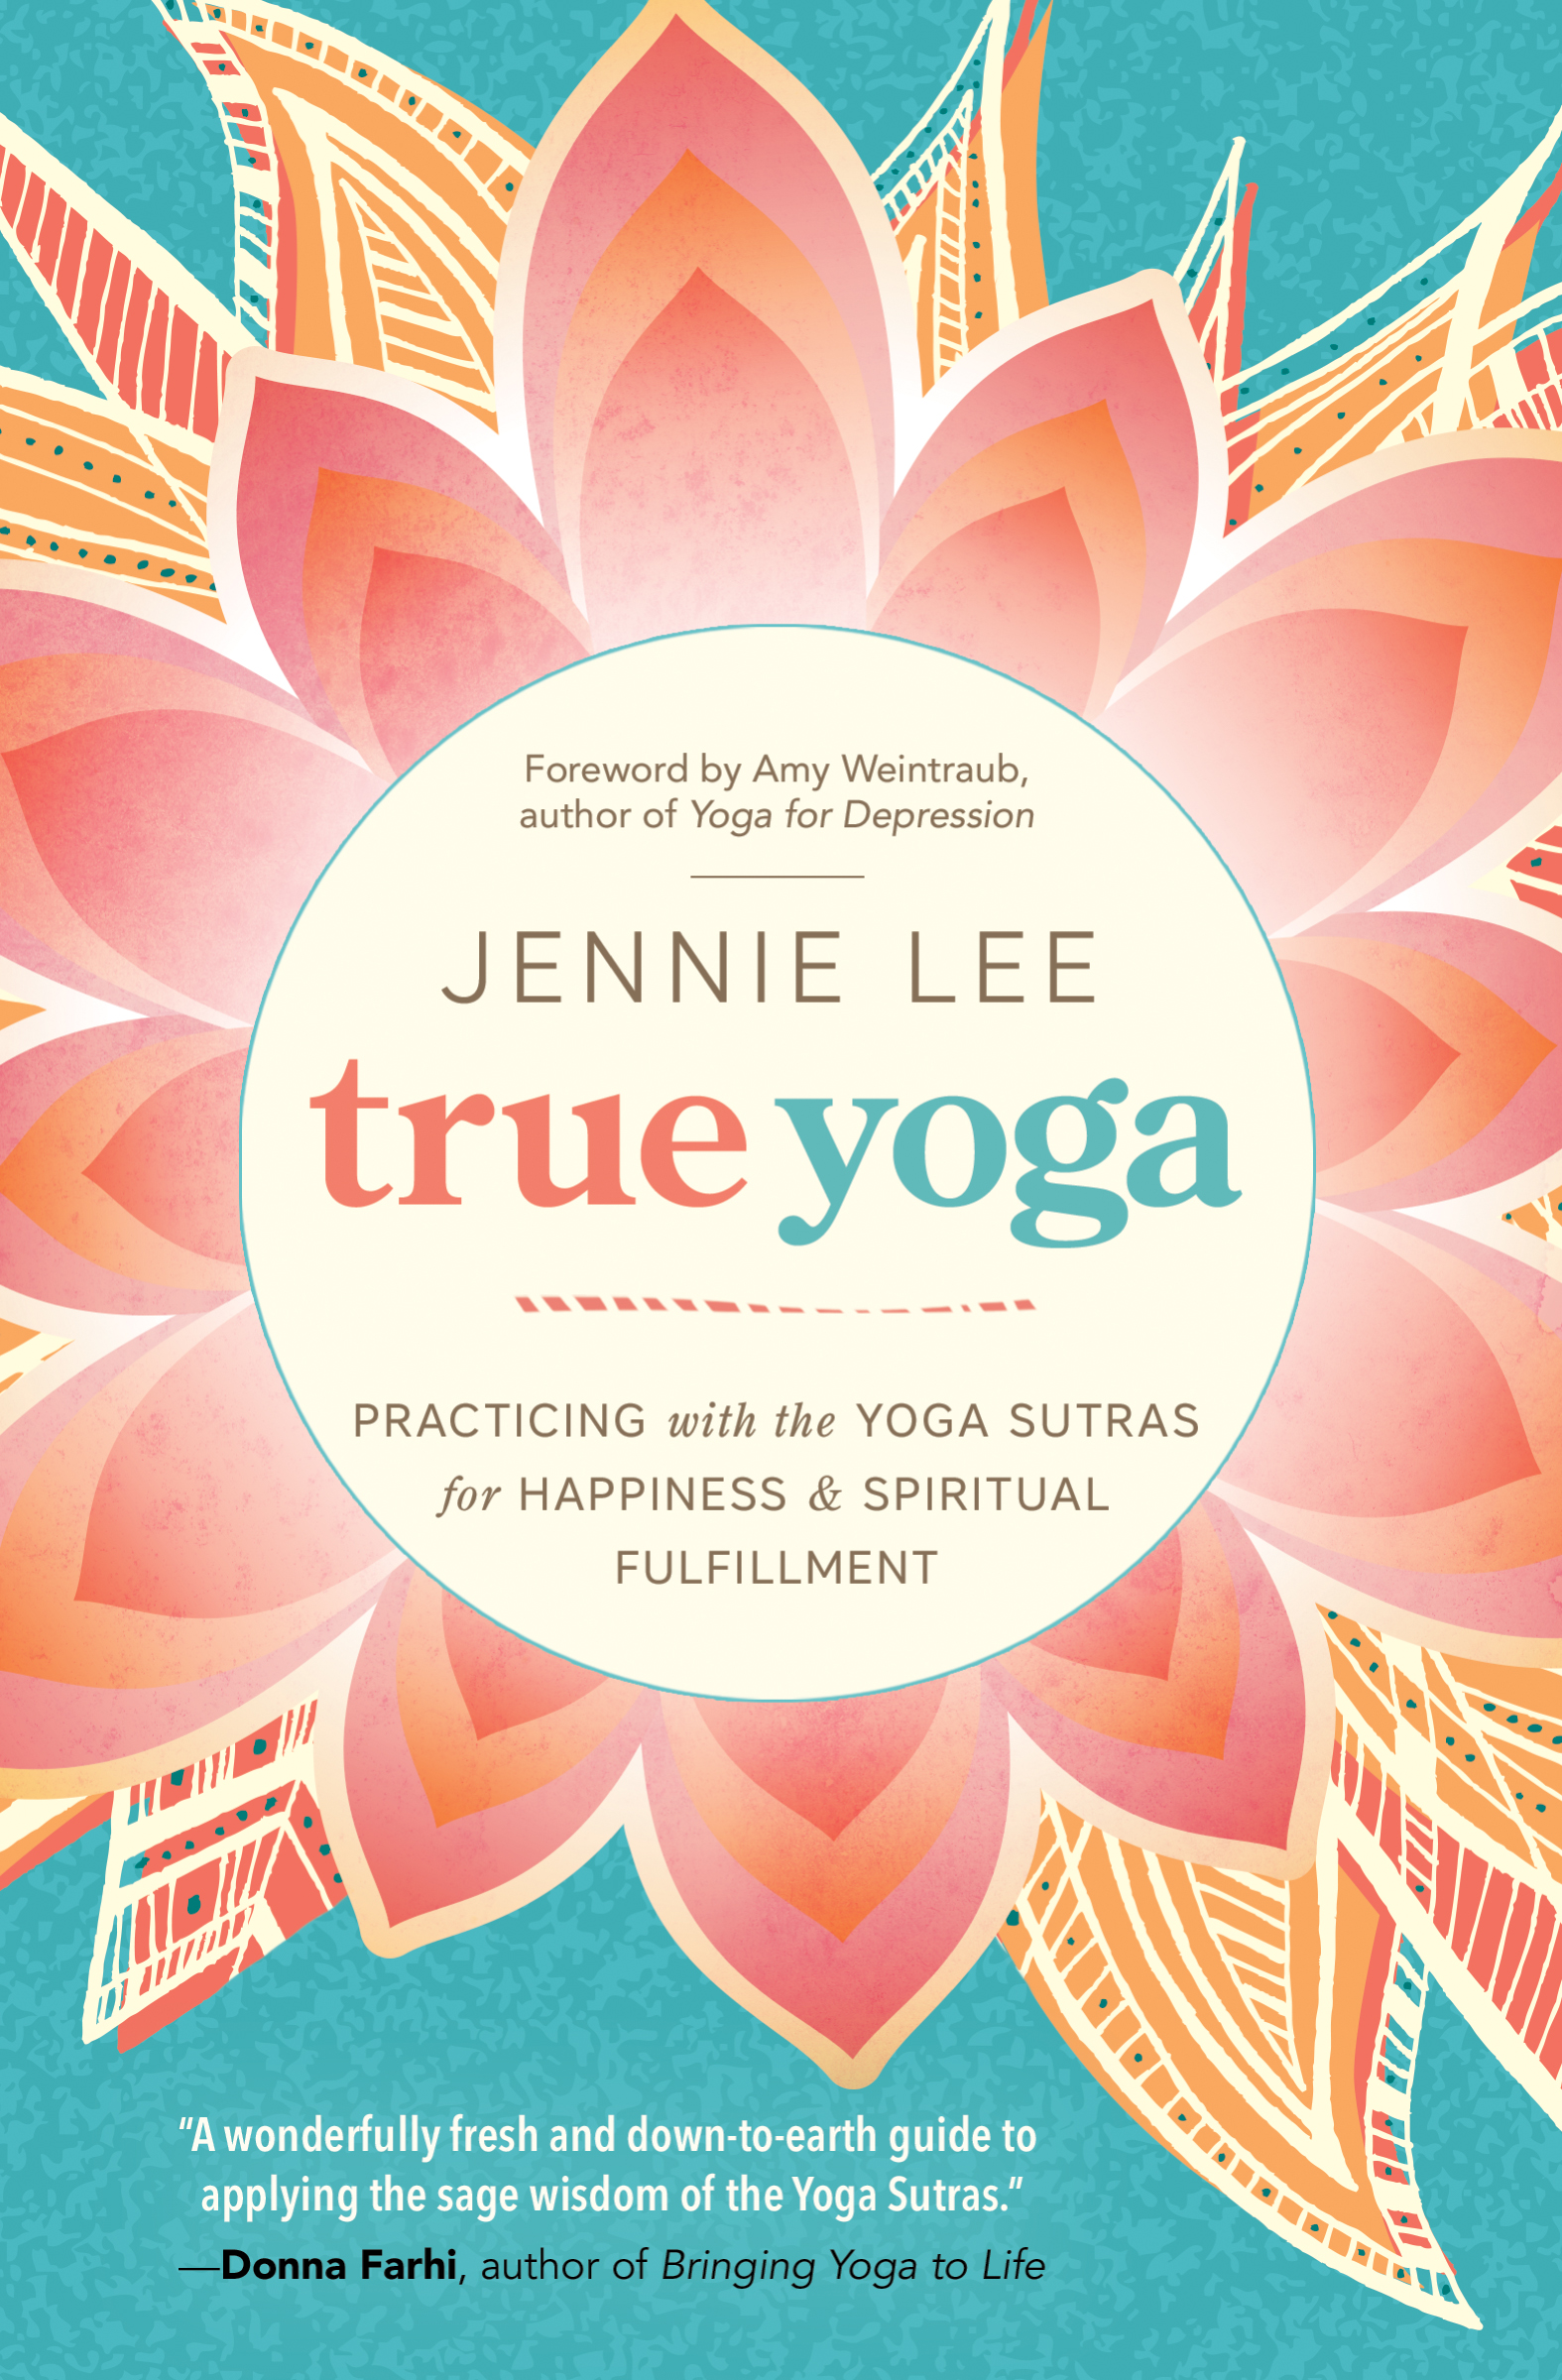 True Yoga by Jennie Lee